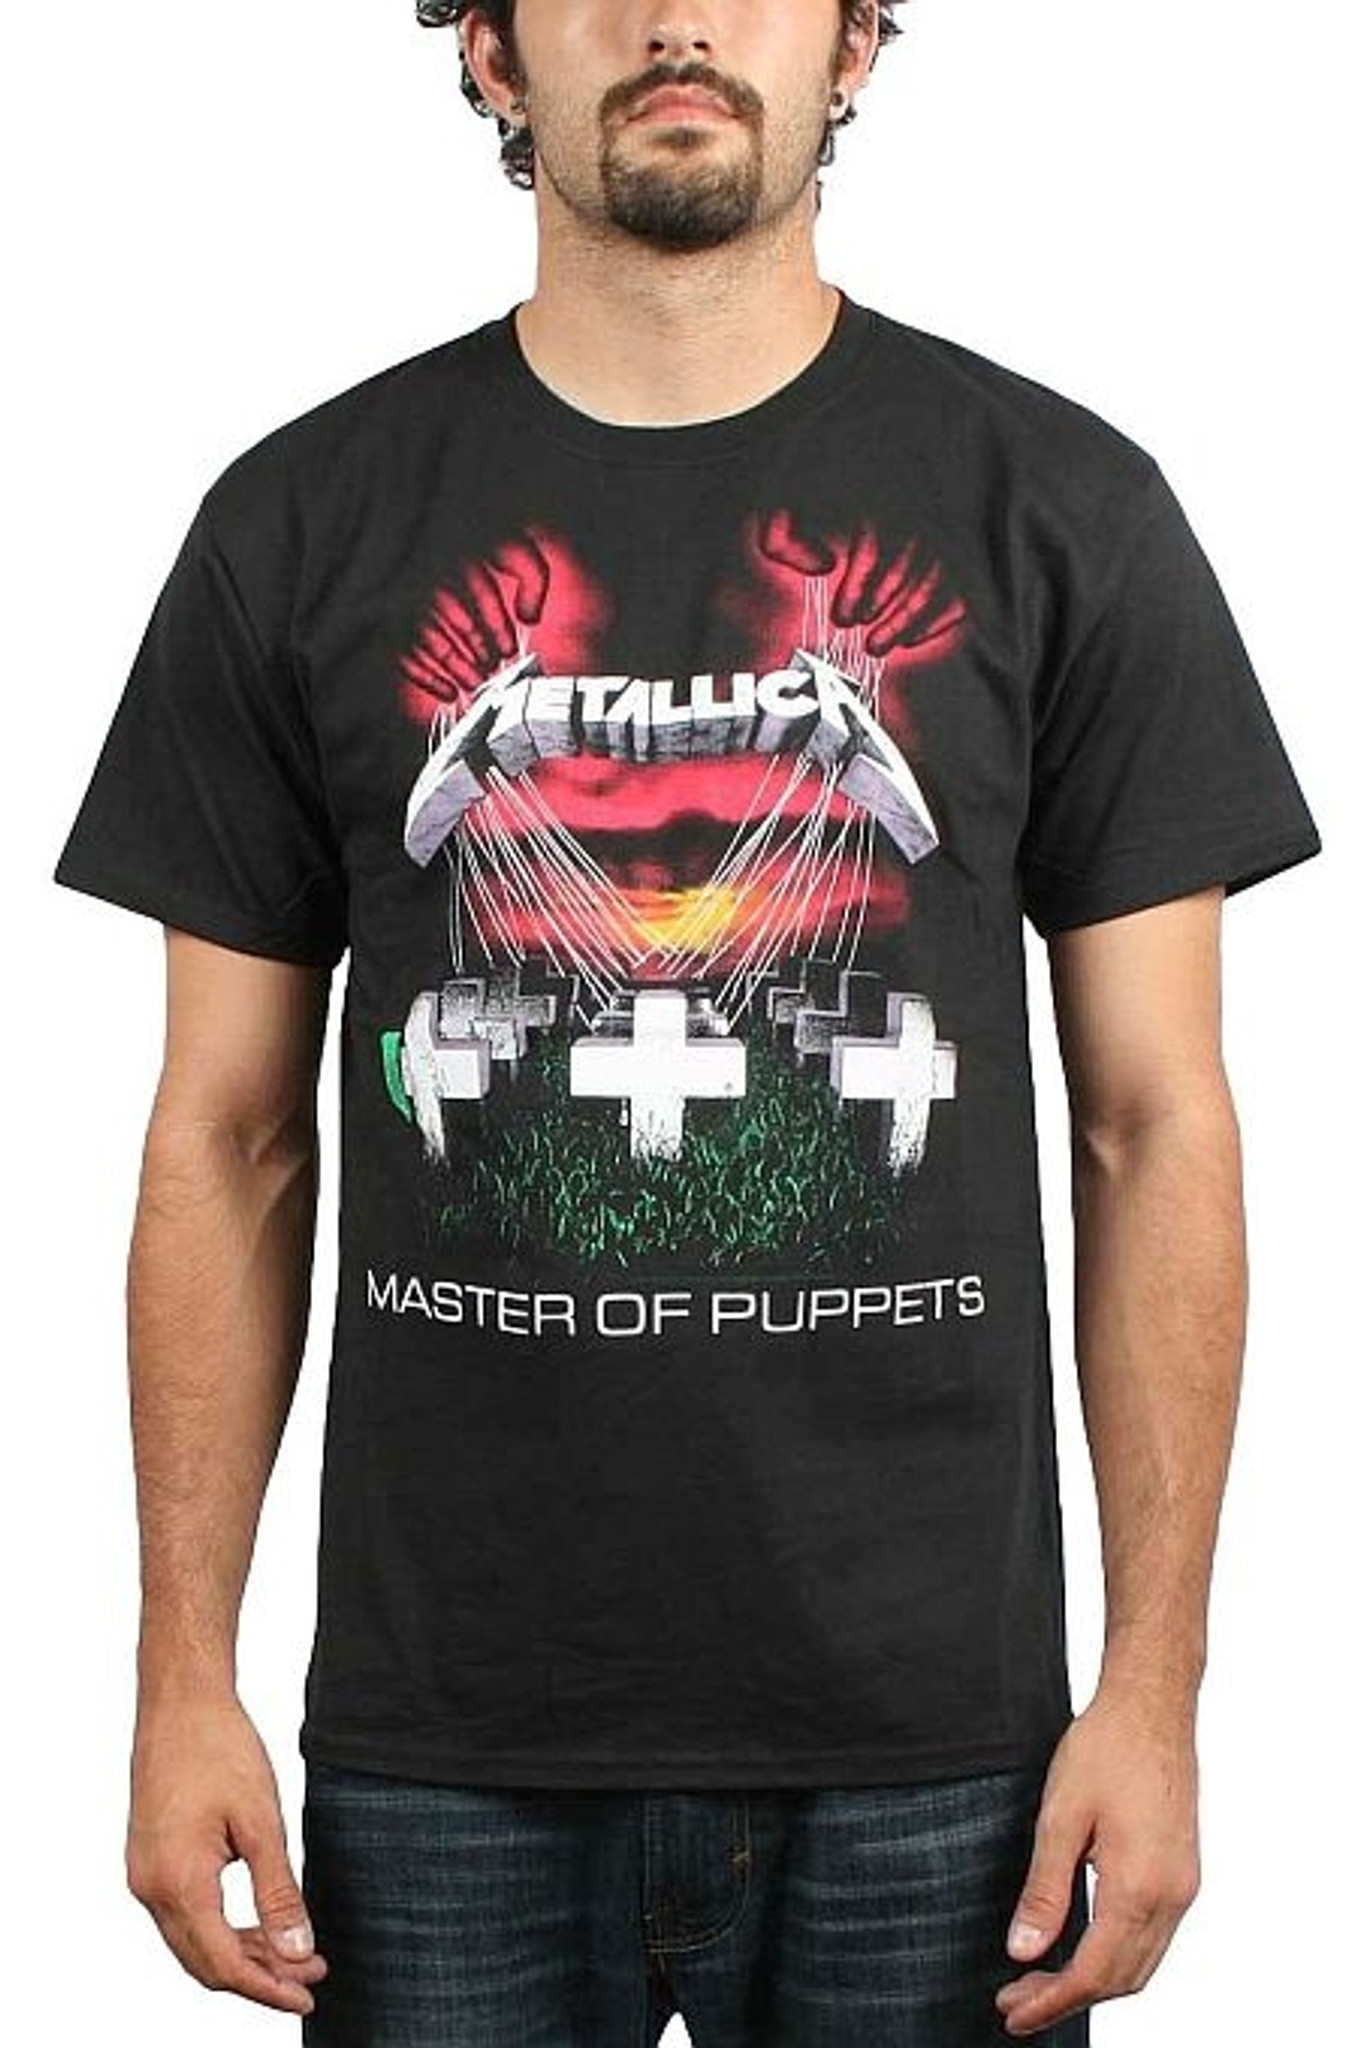 METALLICA Master Of Puppets Tracks T-Shirt All Sizes NEW /& OFFICIAL 2-sided